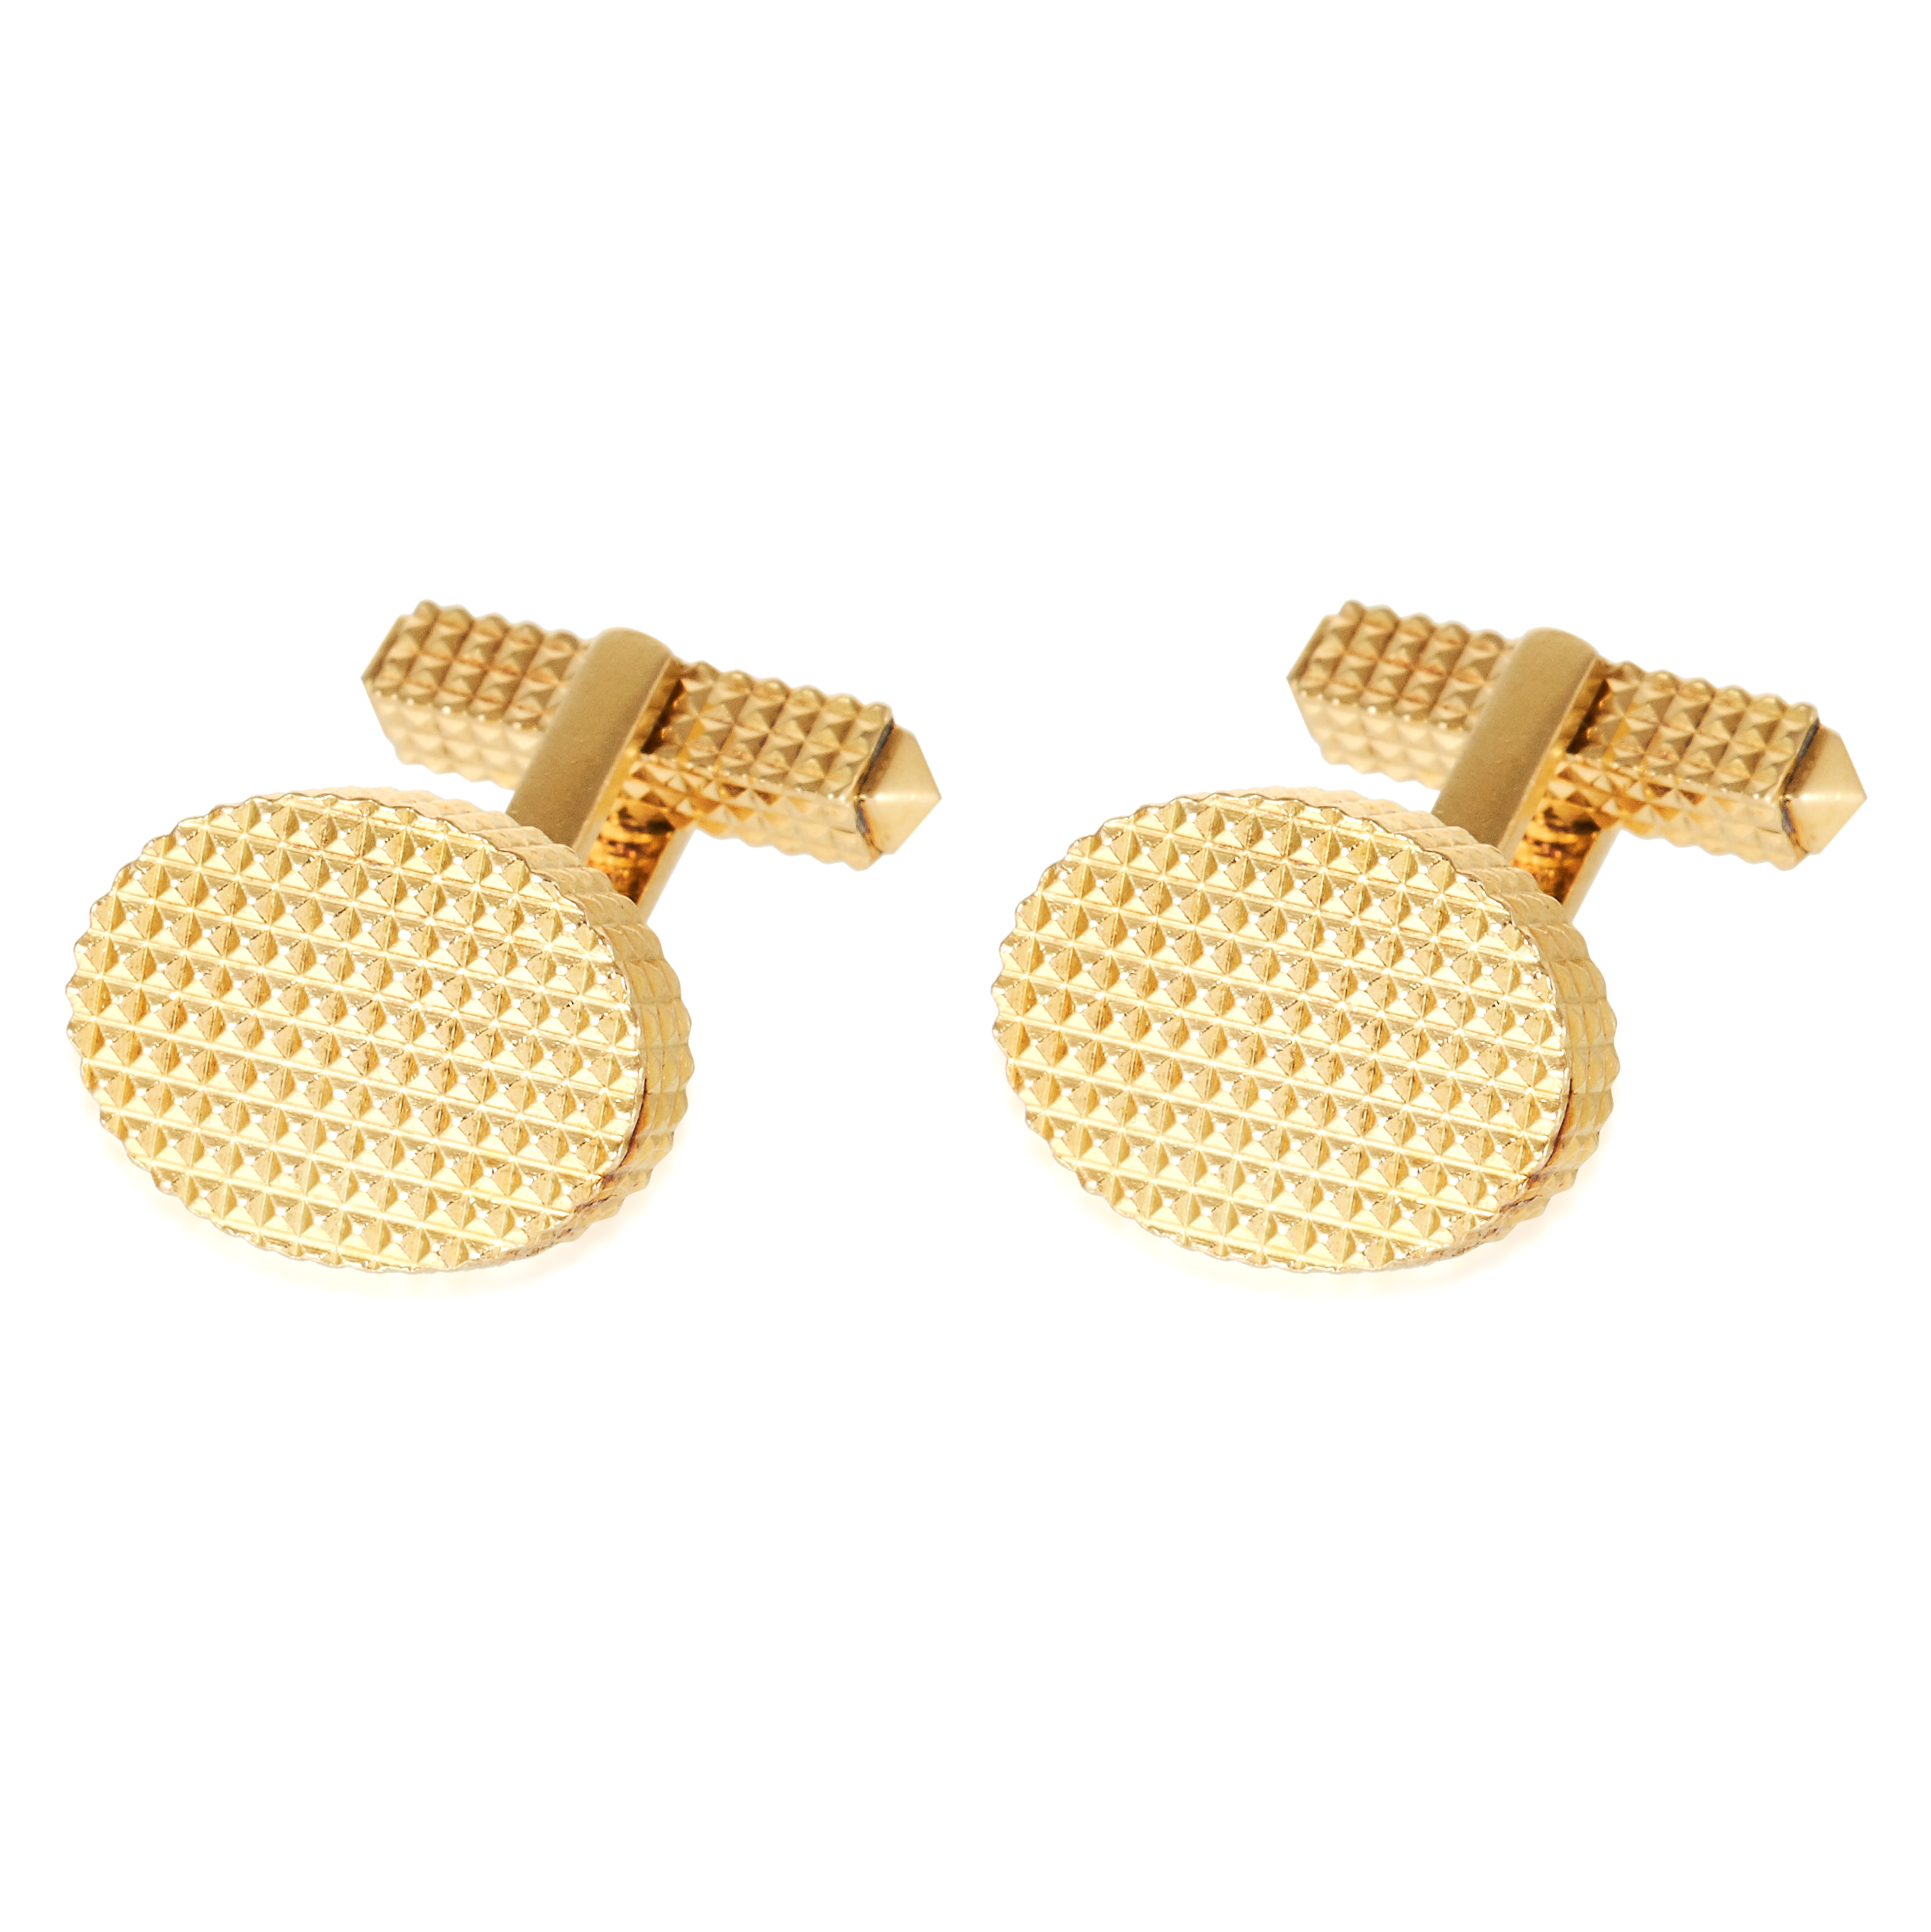 A PAIR OF HOBNAIL CUFFLINKS, TIFFANY & CO, CIRCA 1970s in 18ct yellow gold, with textured design,